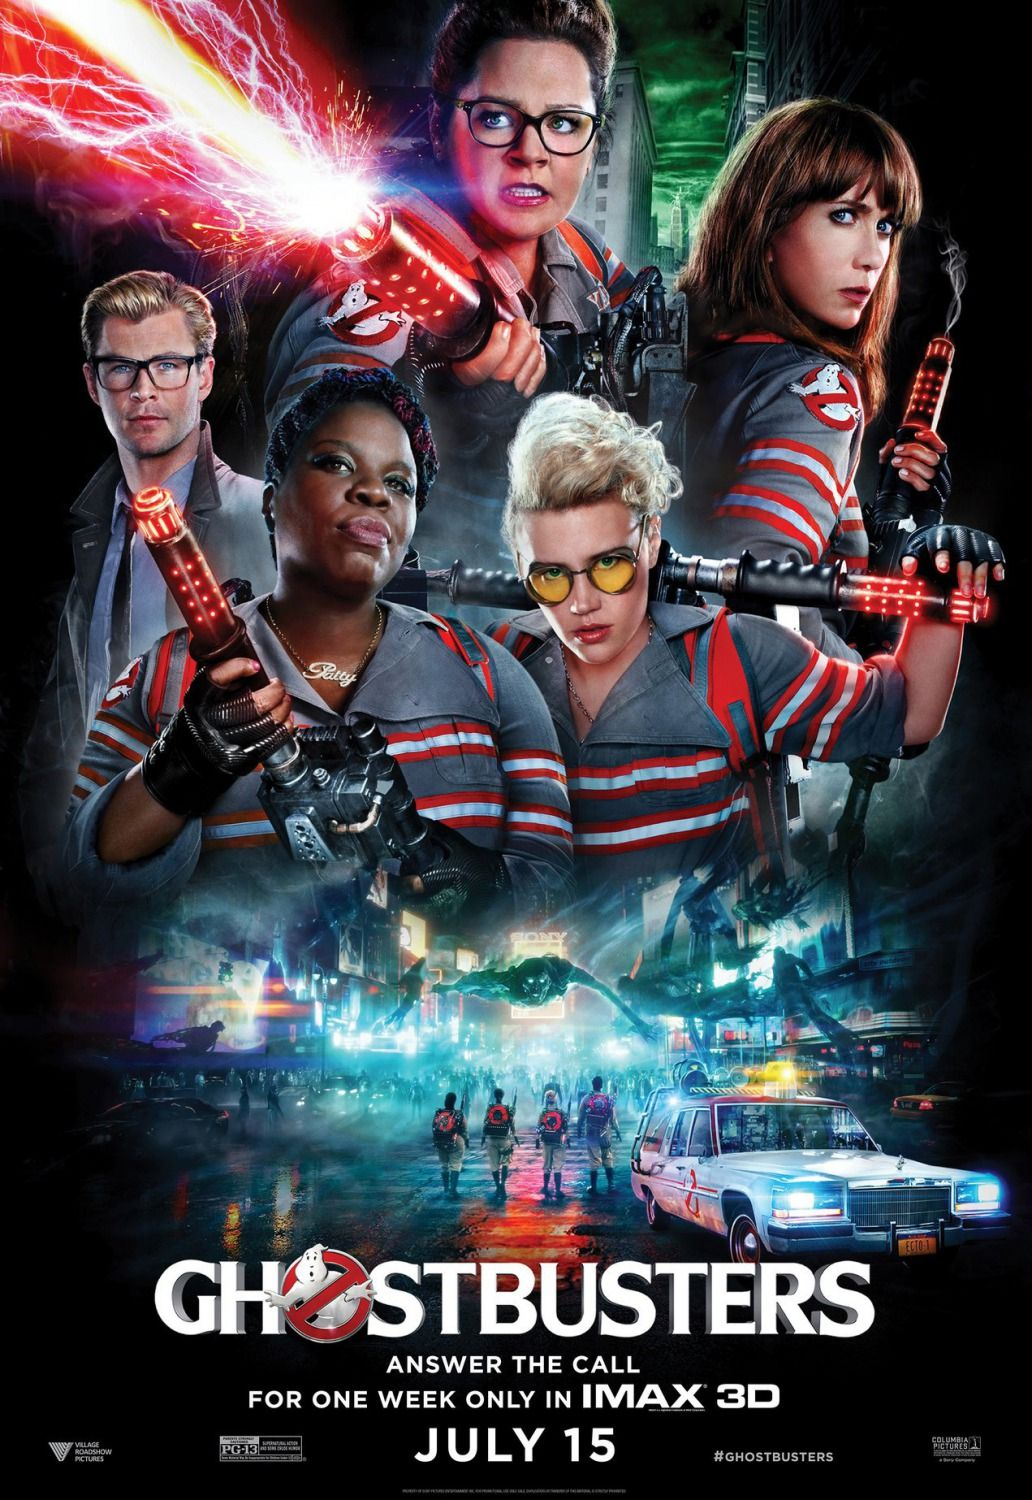 Ghostbusters 2016 New Clips Images And Posters Ghostbusters Movie Ghostbusters Poster Ghostbusters 2016